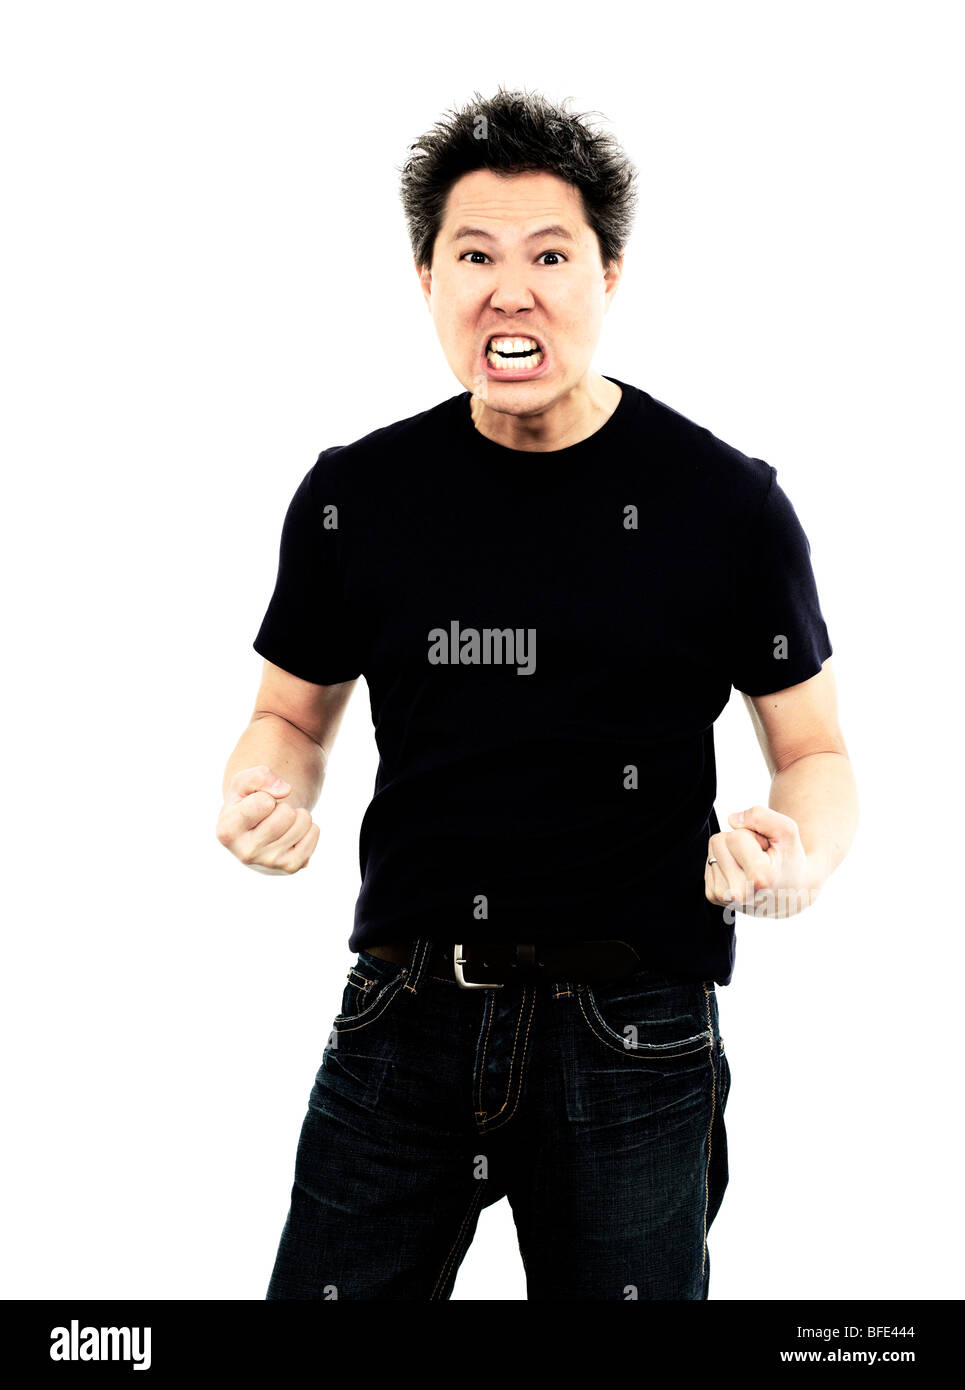 44 year old Asian male wearing jeans and a blue t-shirt standing against a white background screaming - Stock Image